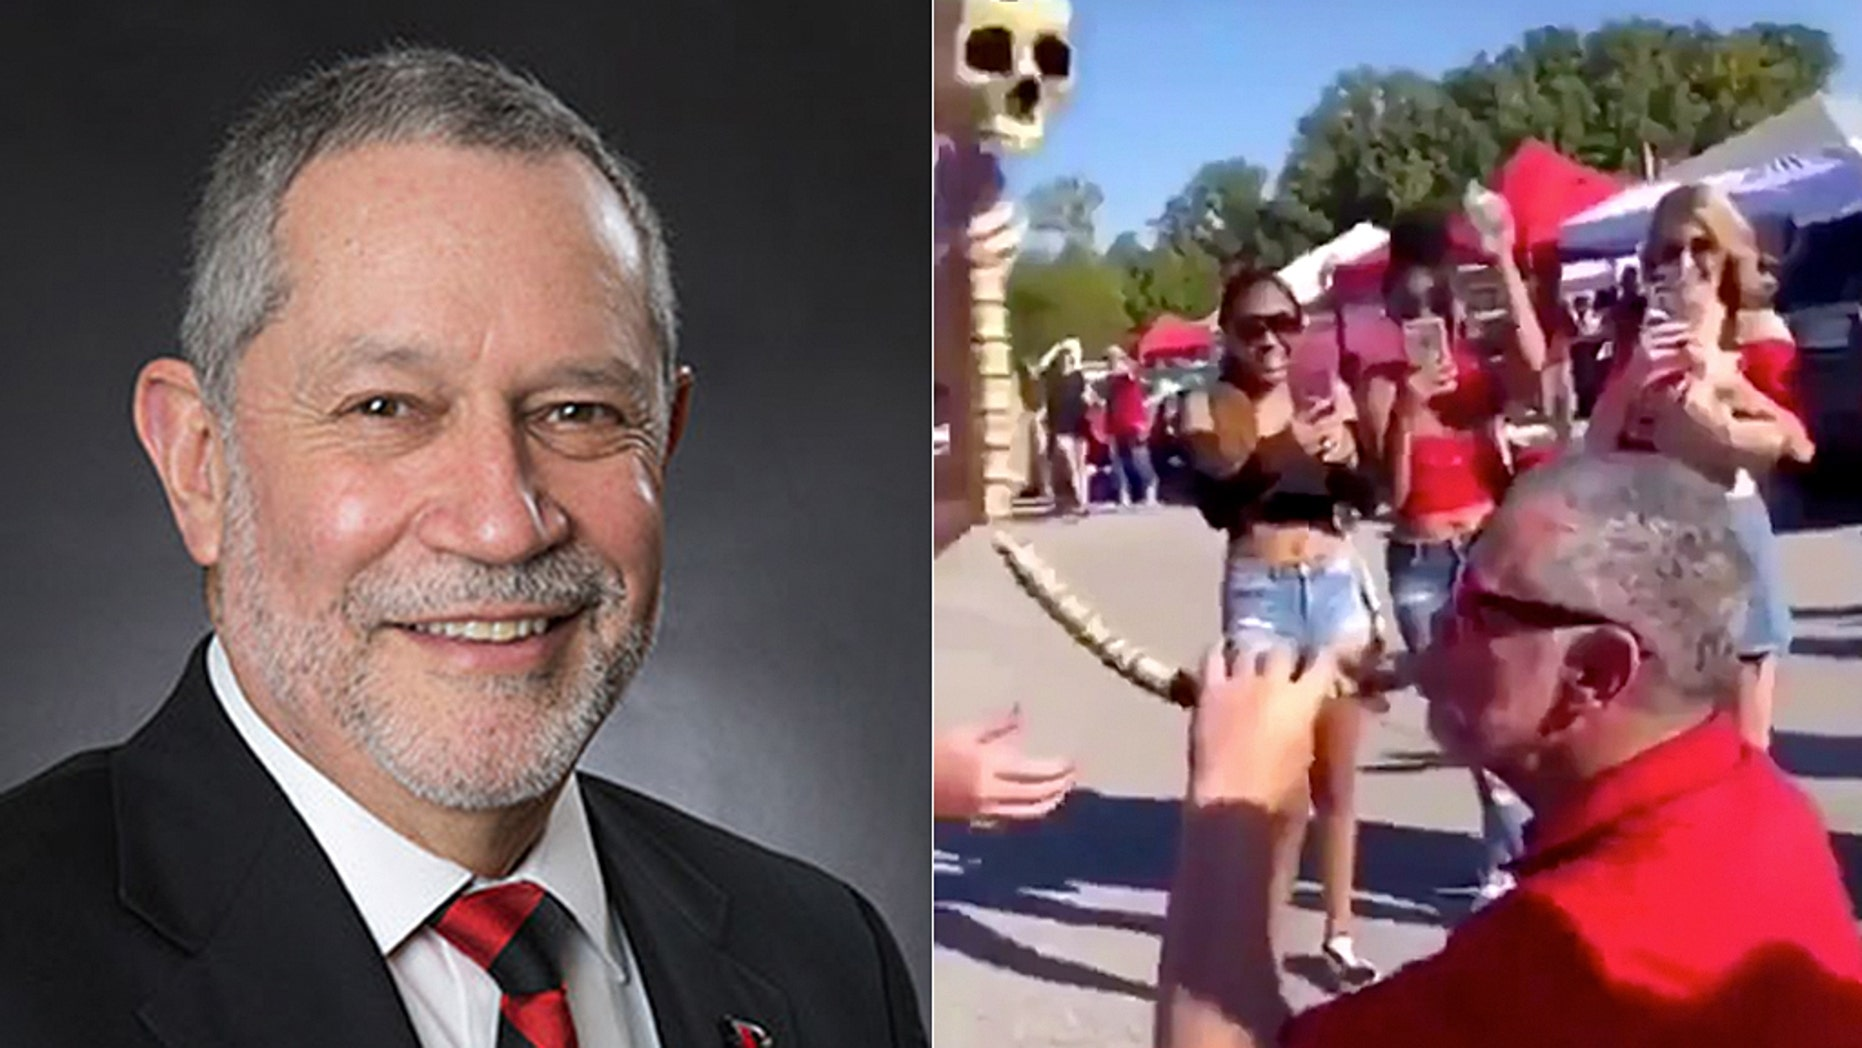 Dr. Carlos Vargas, president of Southeast Missouri State University, apologized after video surfaced of him drinking from a beer bong.